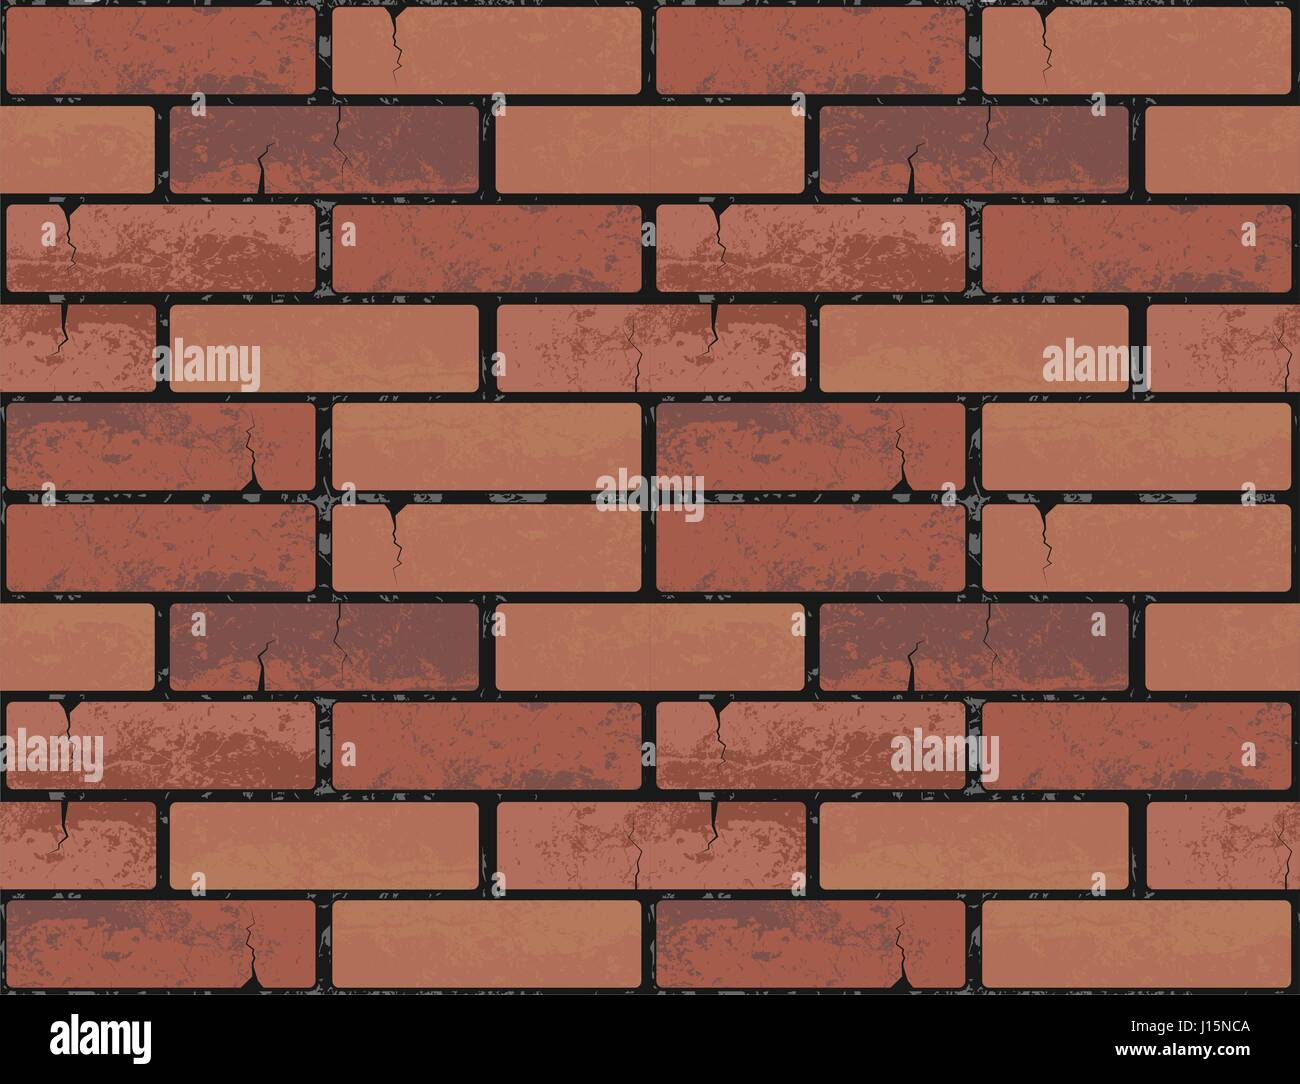 Red Brick Wall Seamless Texture Background Vector Illustration Pattern For Continuous Replicate Endless Web